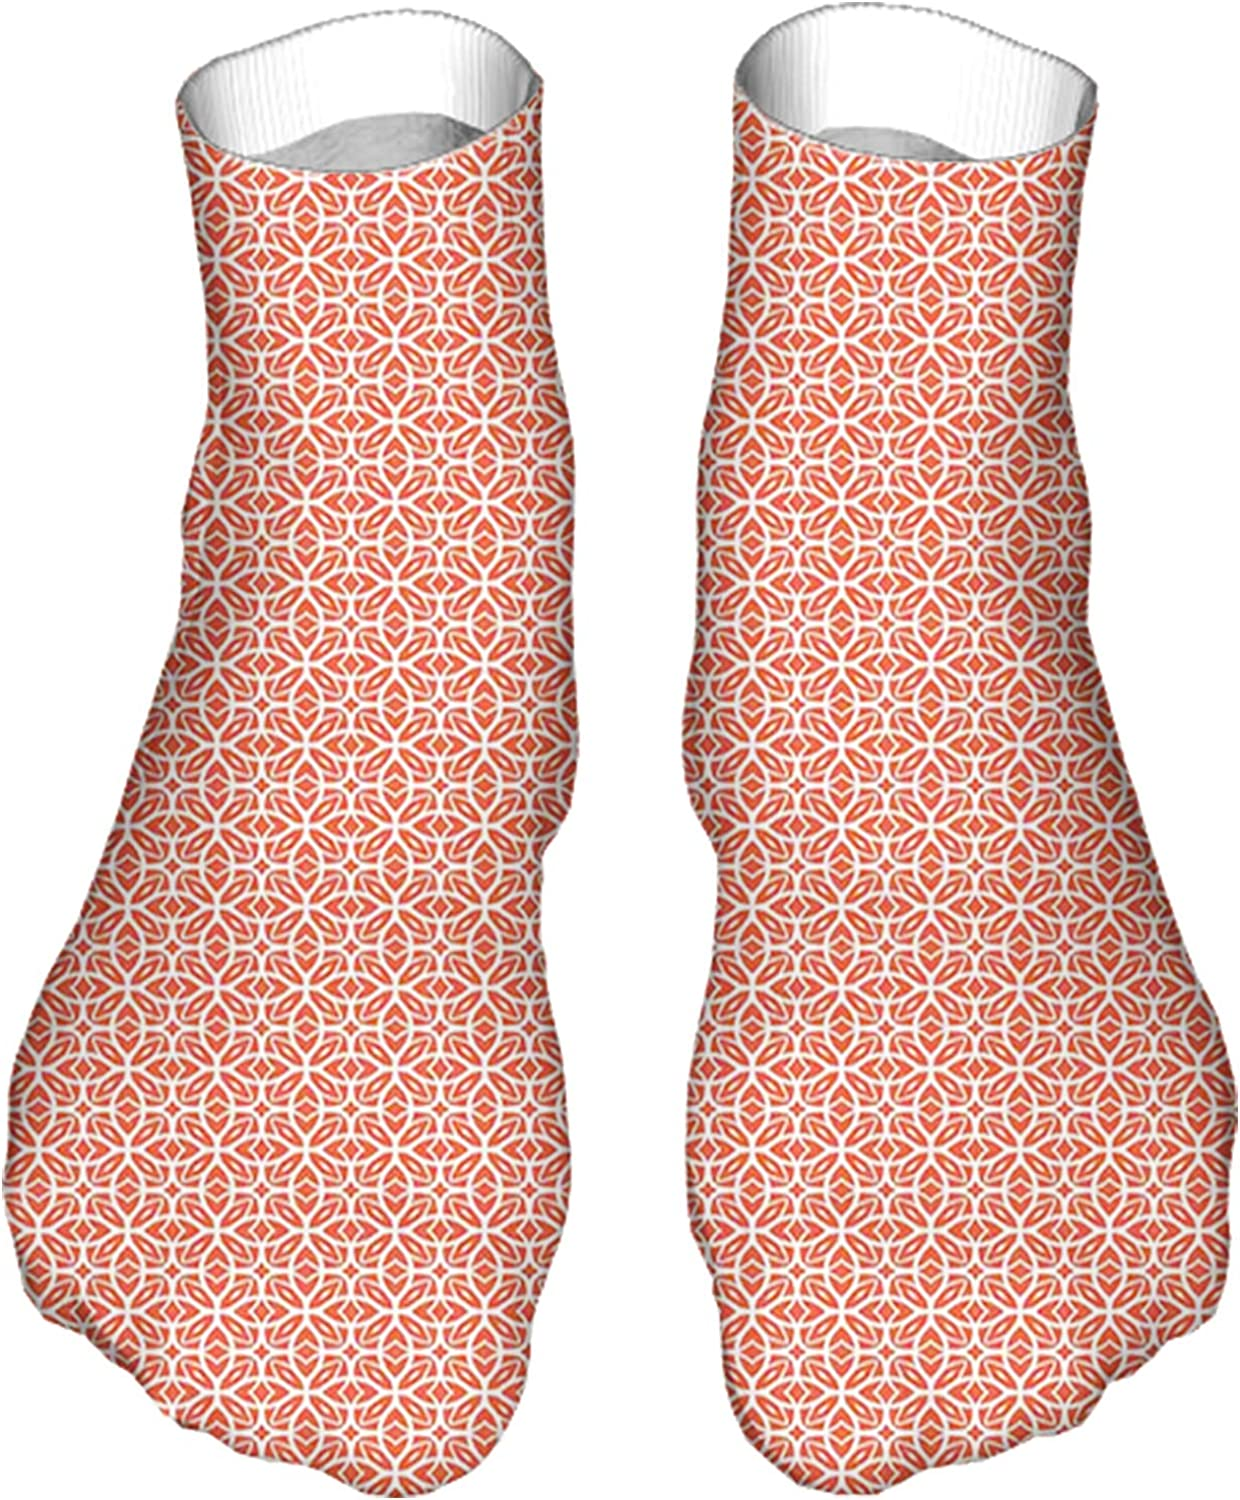 Men's and Women's Fun Socks Printed Cool Novelty Funny Socks,Lace Inspired Endless Design of Four Leaf Flower Abstract